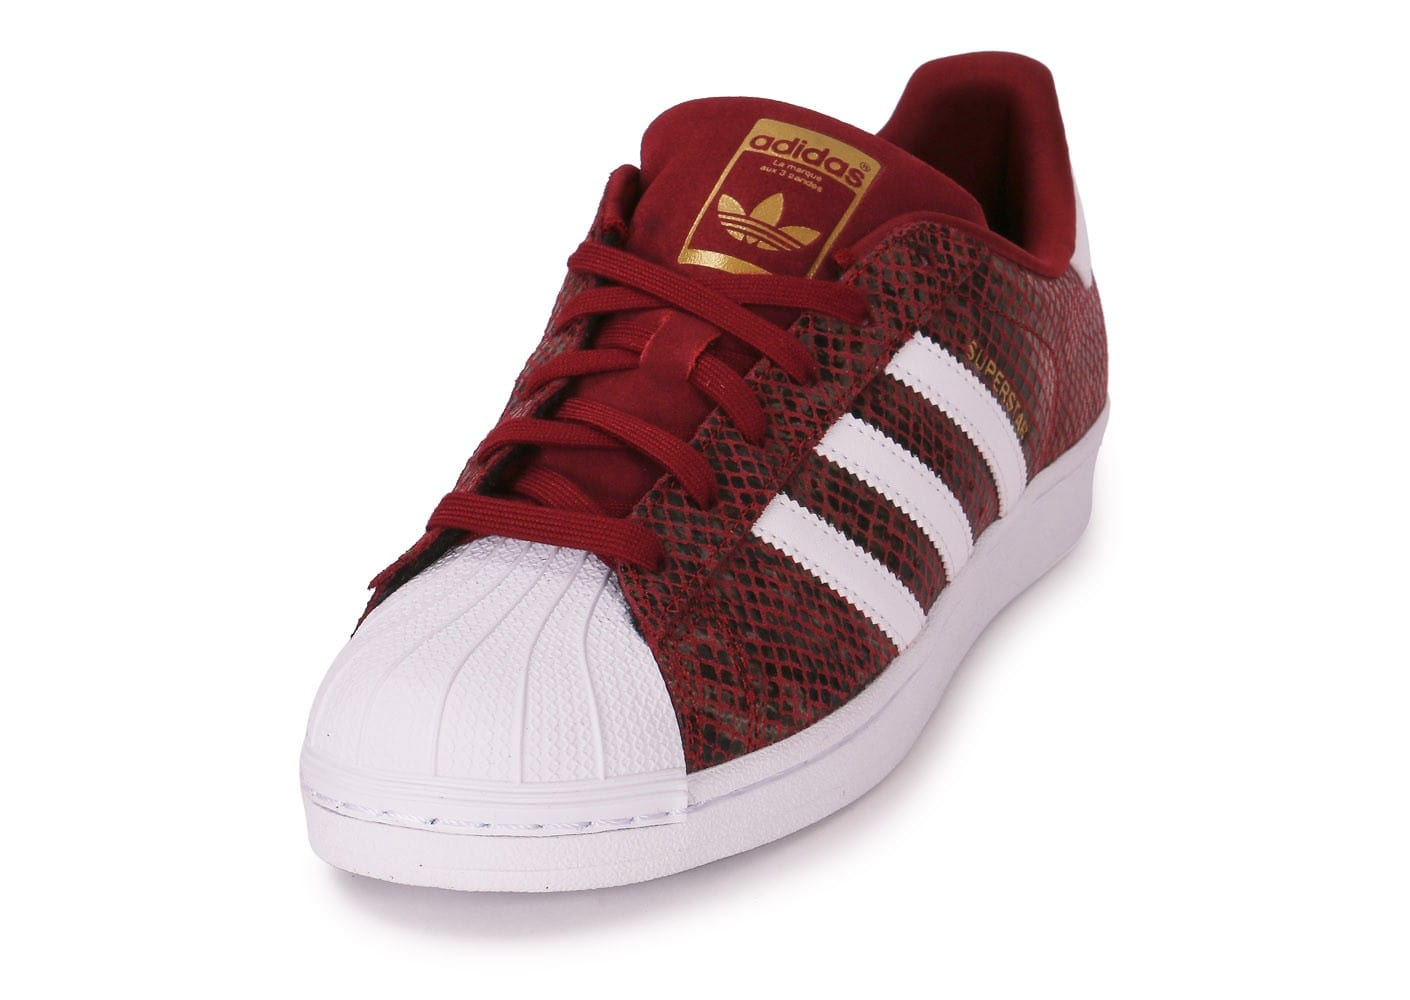 Conception innovante f3956 14ed1 Adidas Superstar Red Snake herbusinessuk.co.uk